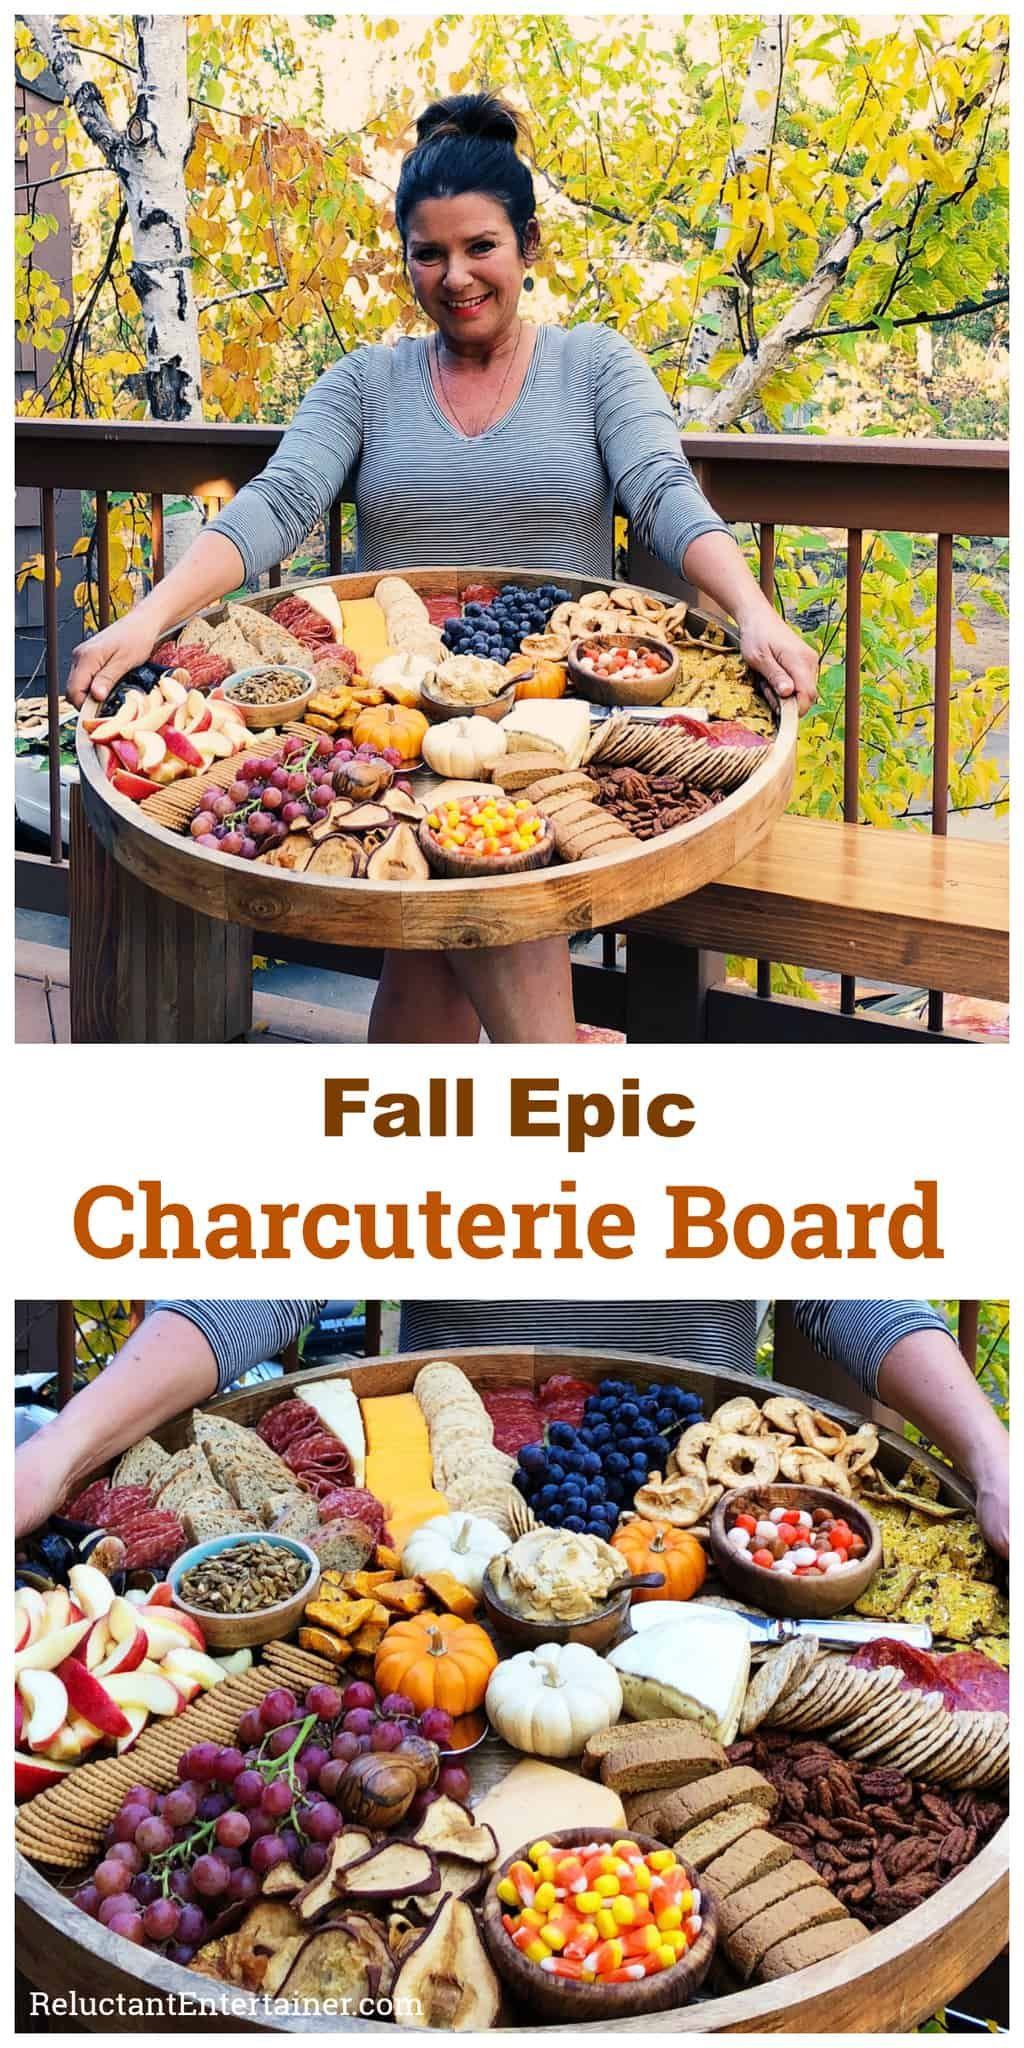 Thanksgiving 2019 Appetizers  Fall Epic Charcuterie Board